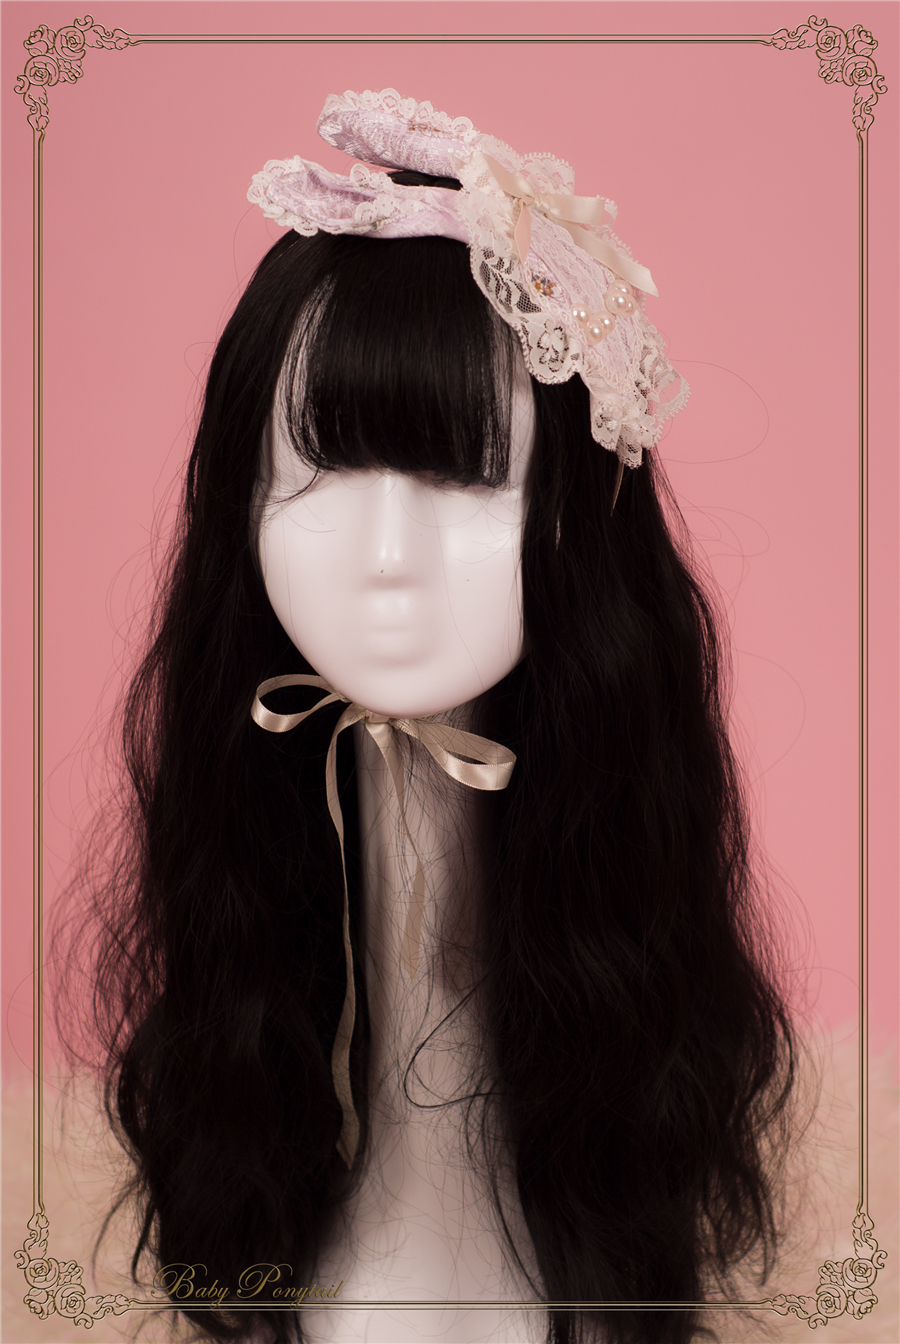 BabyPonytail_Stock Photo_My Favorite Companion_Bunny Head Dress_9.jpg